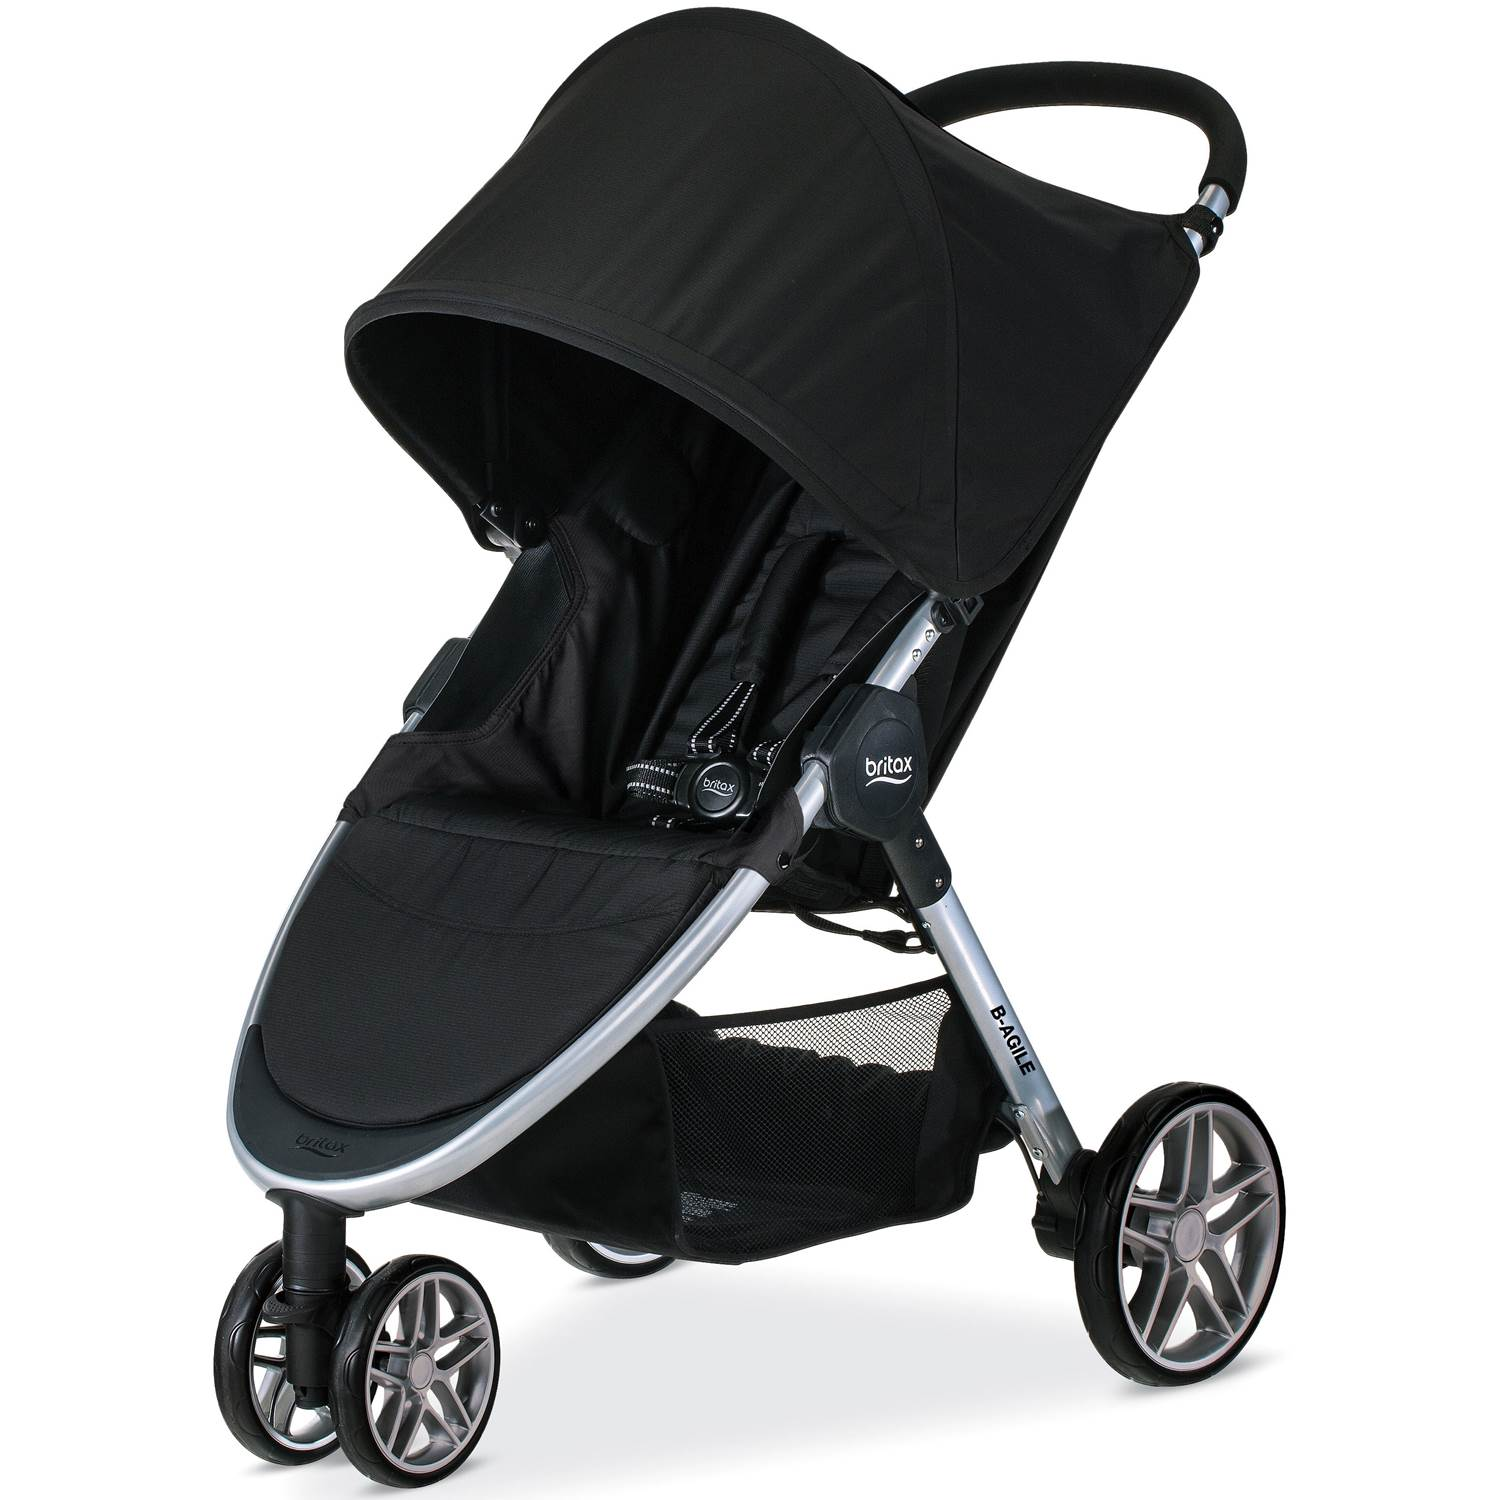 Britax 2017 B-agile Lightweight Best Lightweight Stroller Reviews 2018 The Most